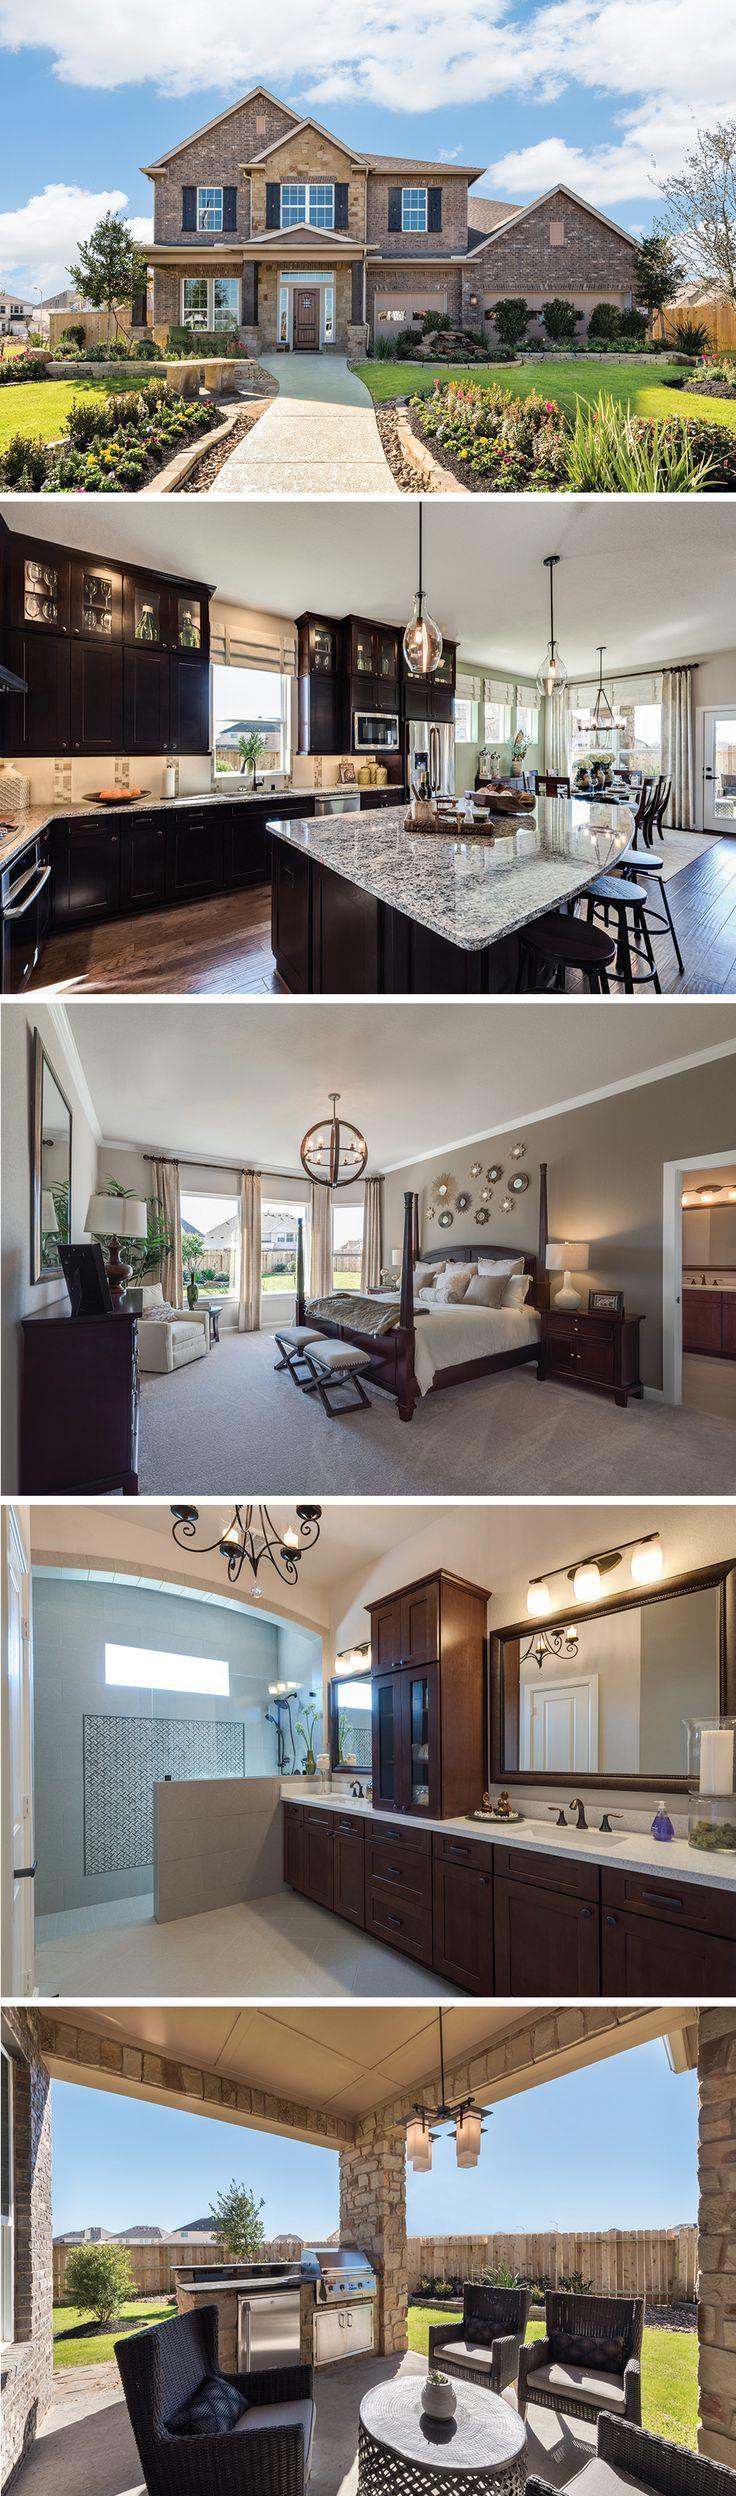 Beautiful Home Inspiration The Kennessey By David Weekley Homes